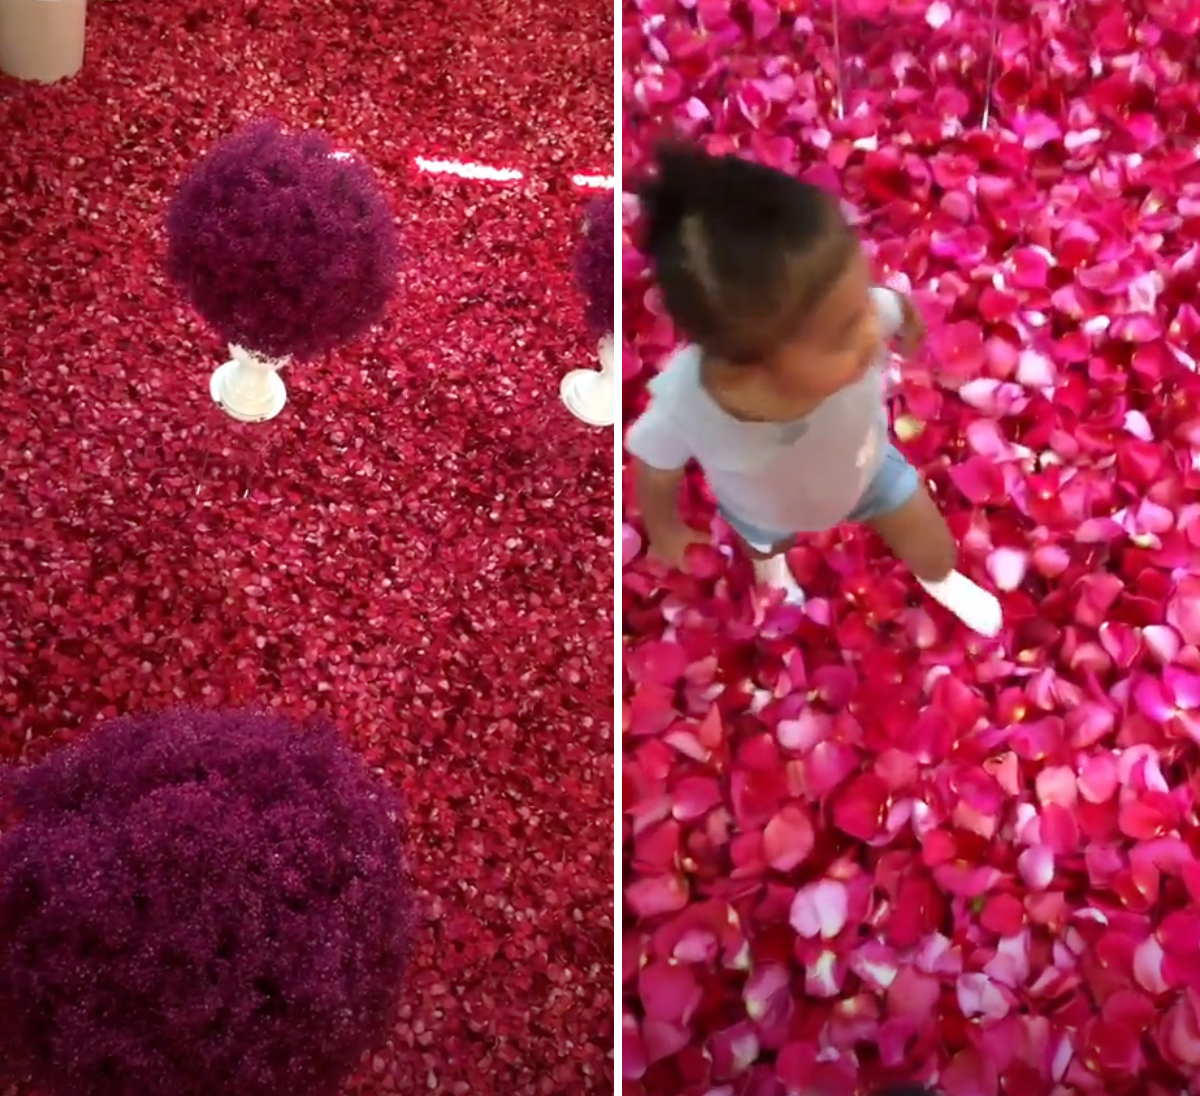 Travis-Scott-Covers-GF-Kylie-Jenner's-House-in-Rose-Petals-Ahead-of-Birthday